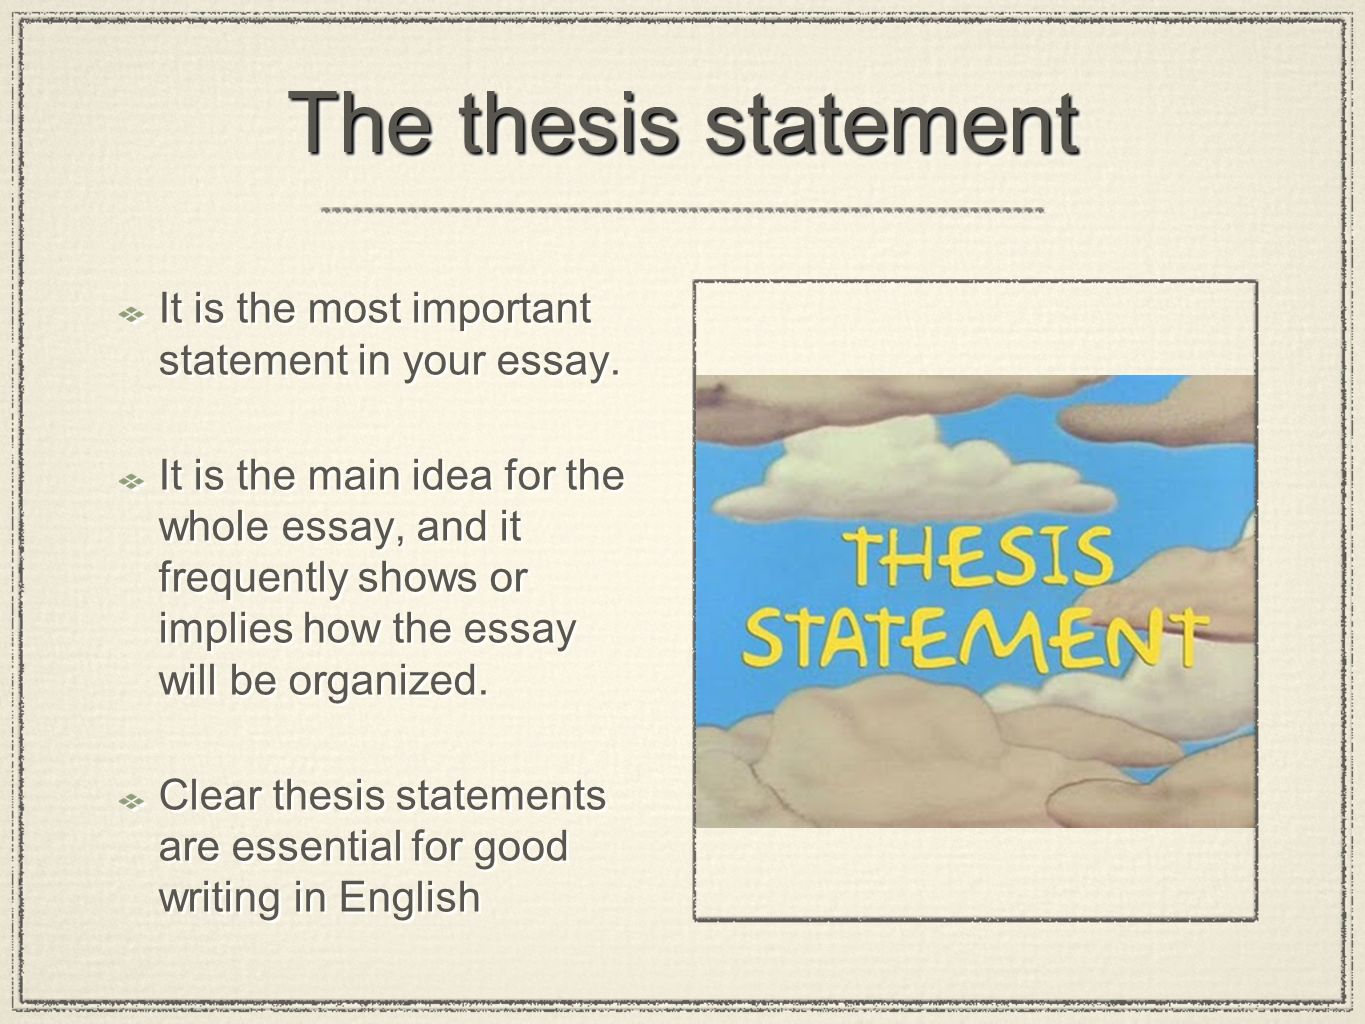 essay part 2 Holiday argument essay assignment: due wednesday on loose-leaf after writing class homework due tuesday, and wednesday, december 1, and 2, 2015: work on your argument essay outline.